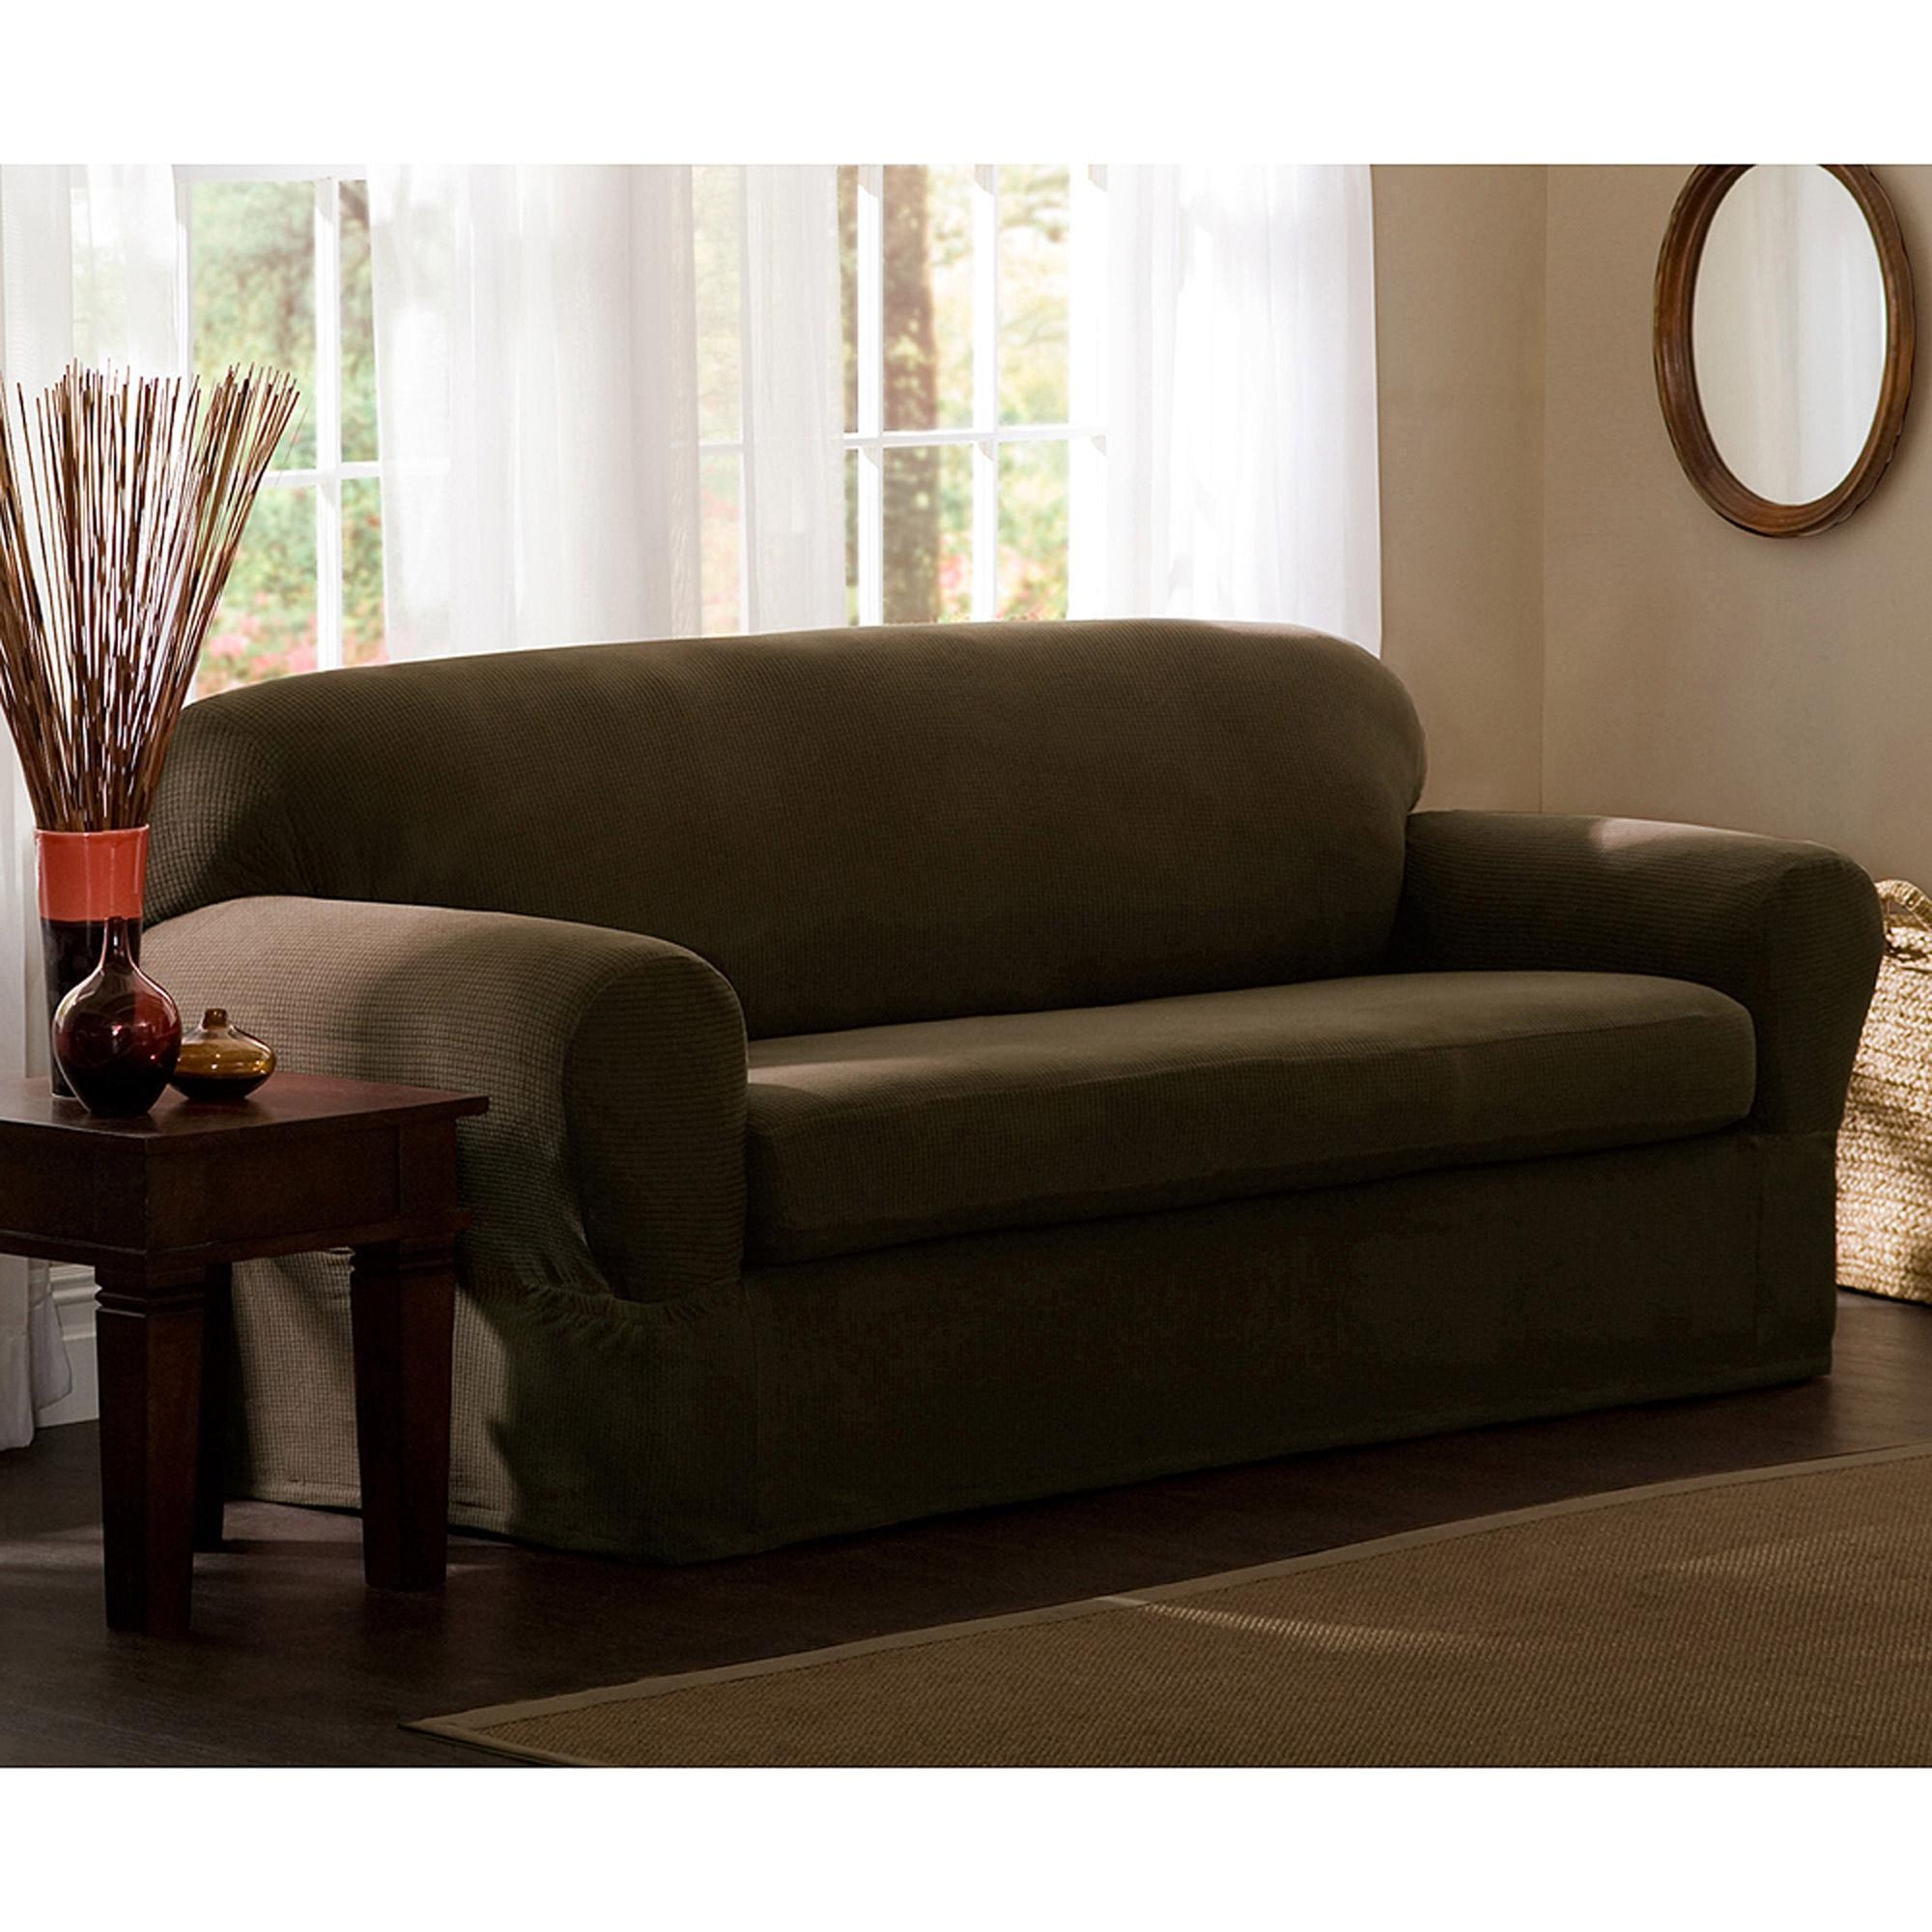 Maytex Reeves Polyester/spandex Loveseat Slipcover – Walmart Throughout Walmart Slipcovers For Sofas (Image 14 of 20)